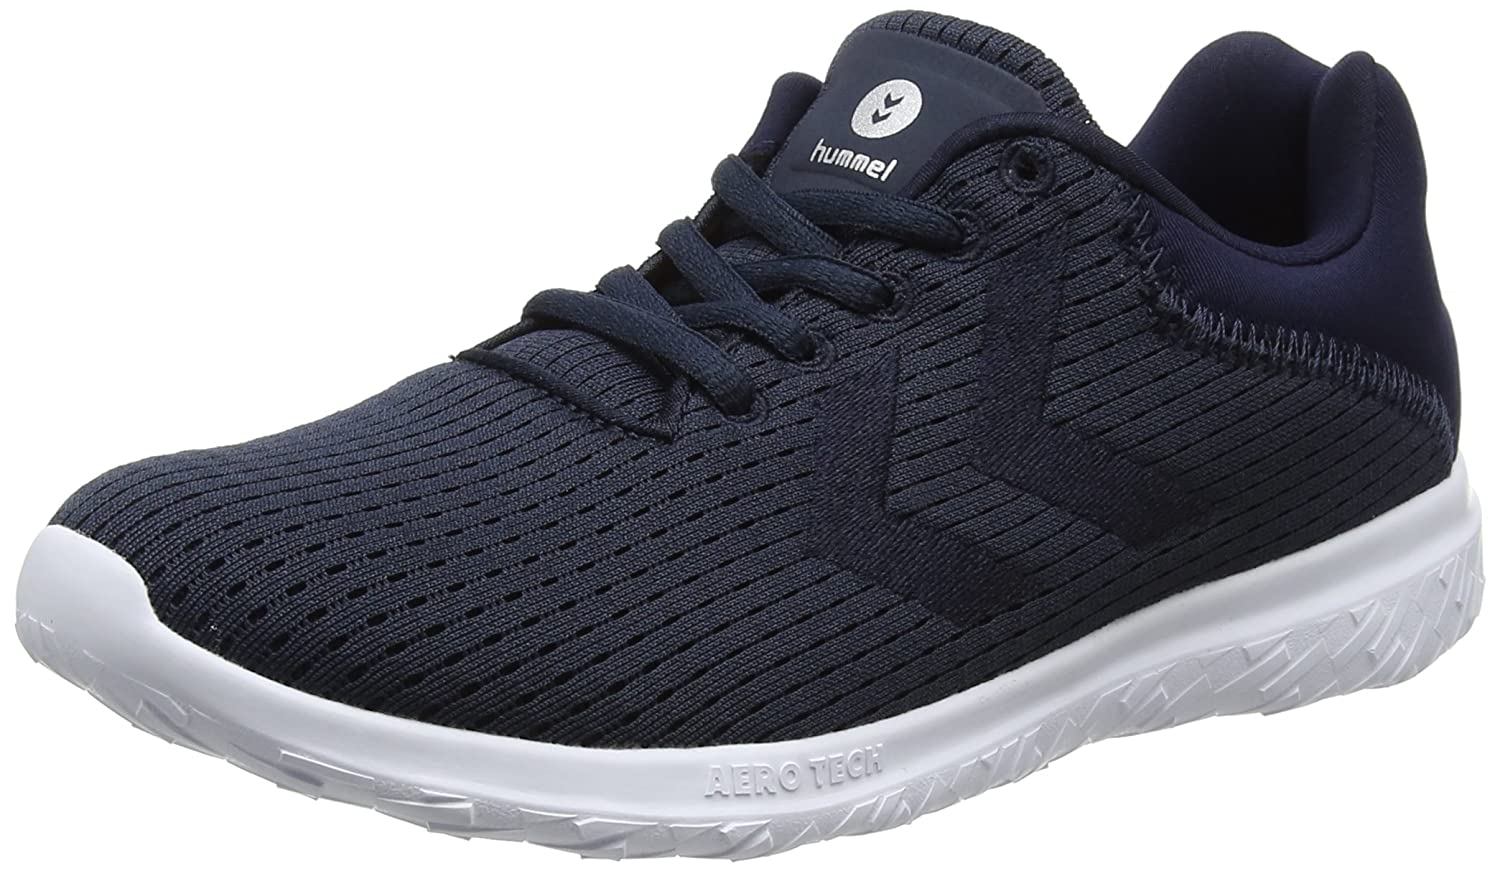 Unisex Adults Effectus Breather Fitness Shoes, Multicoloured Hummel